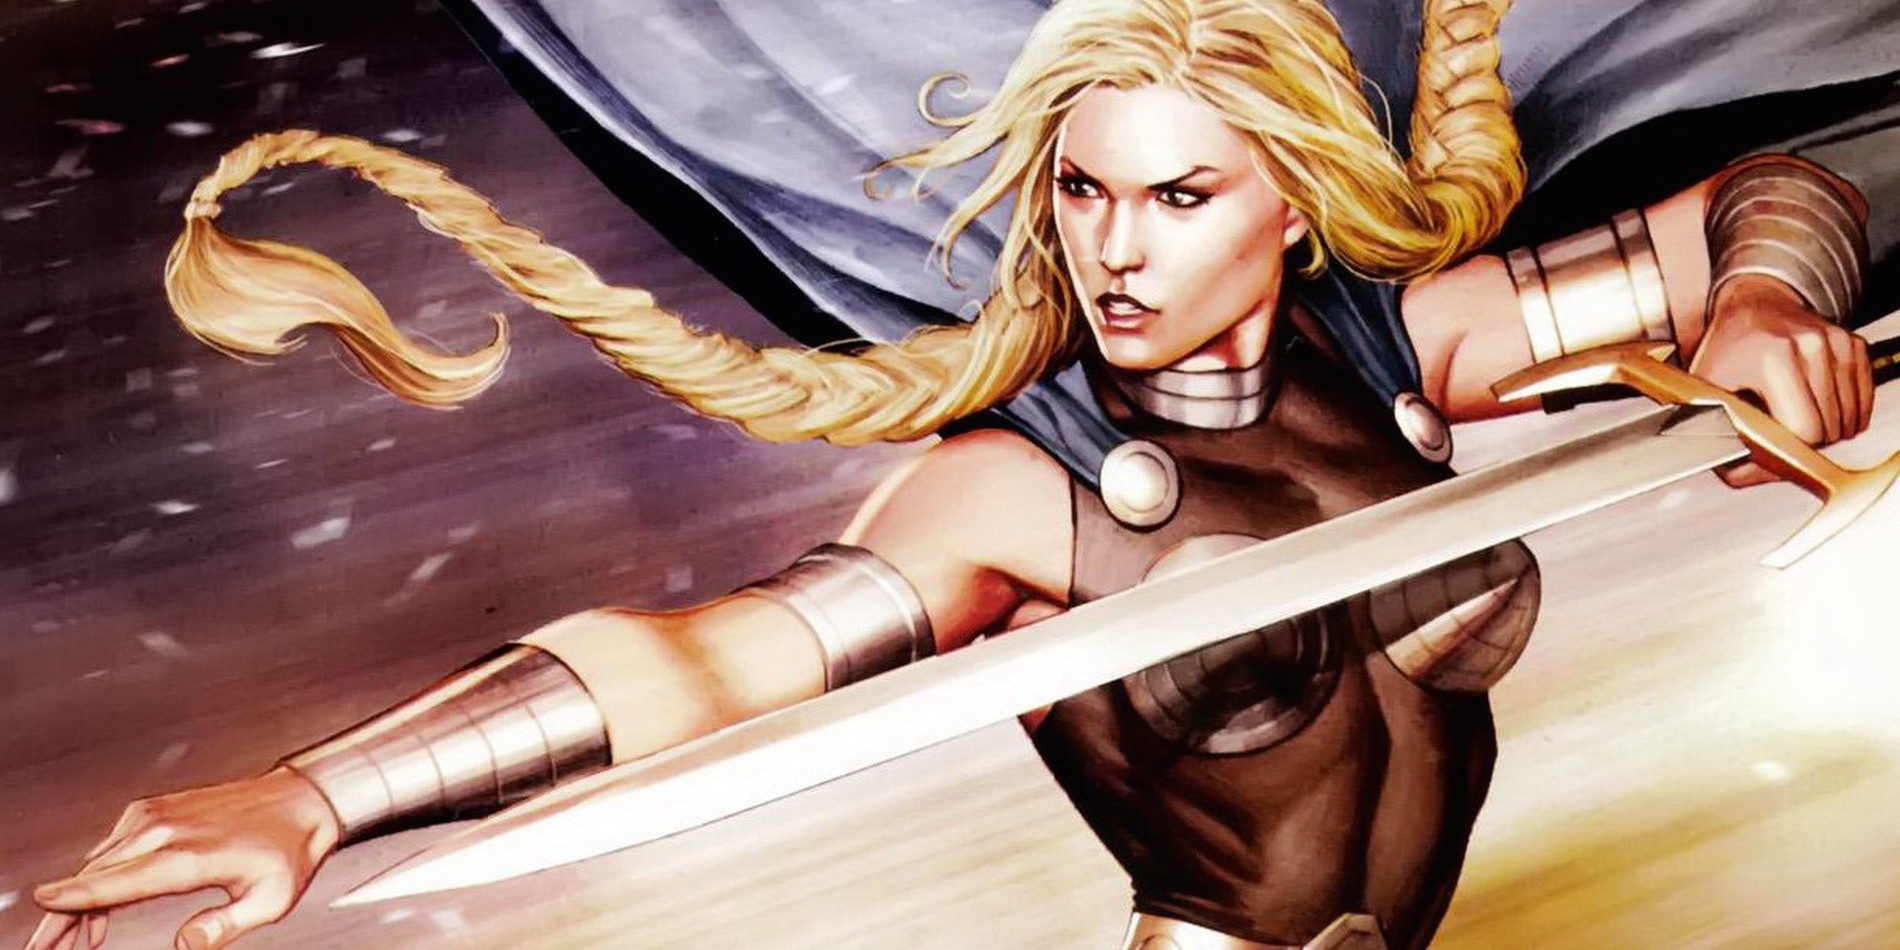 Who Is Valkyrie? 5 Things You Need to Know About the Thor: Ragnarok Femme Fatale